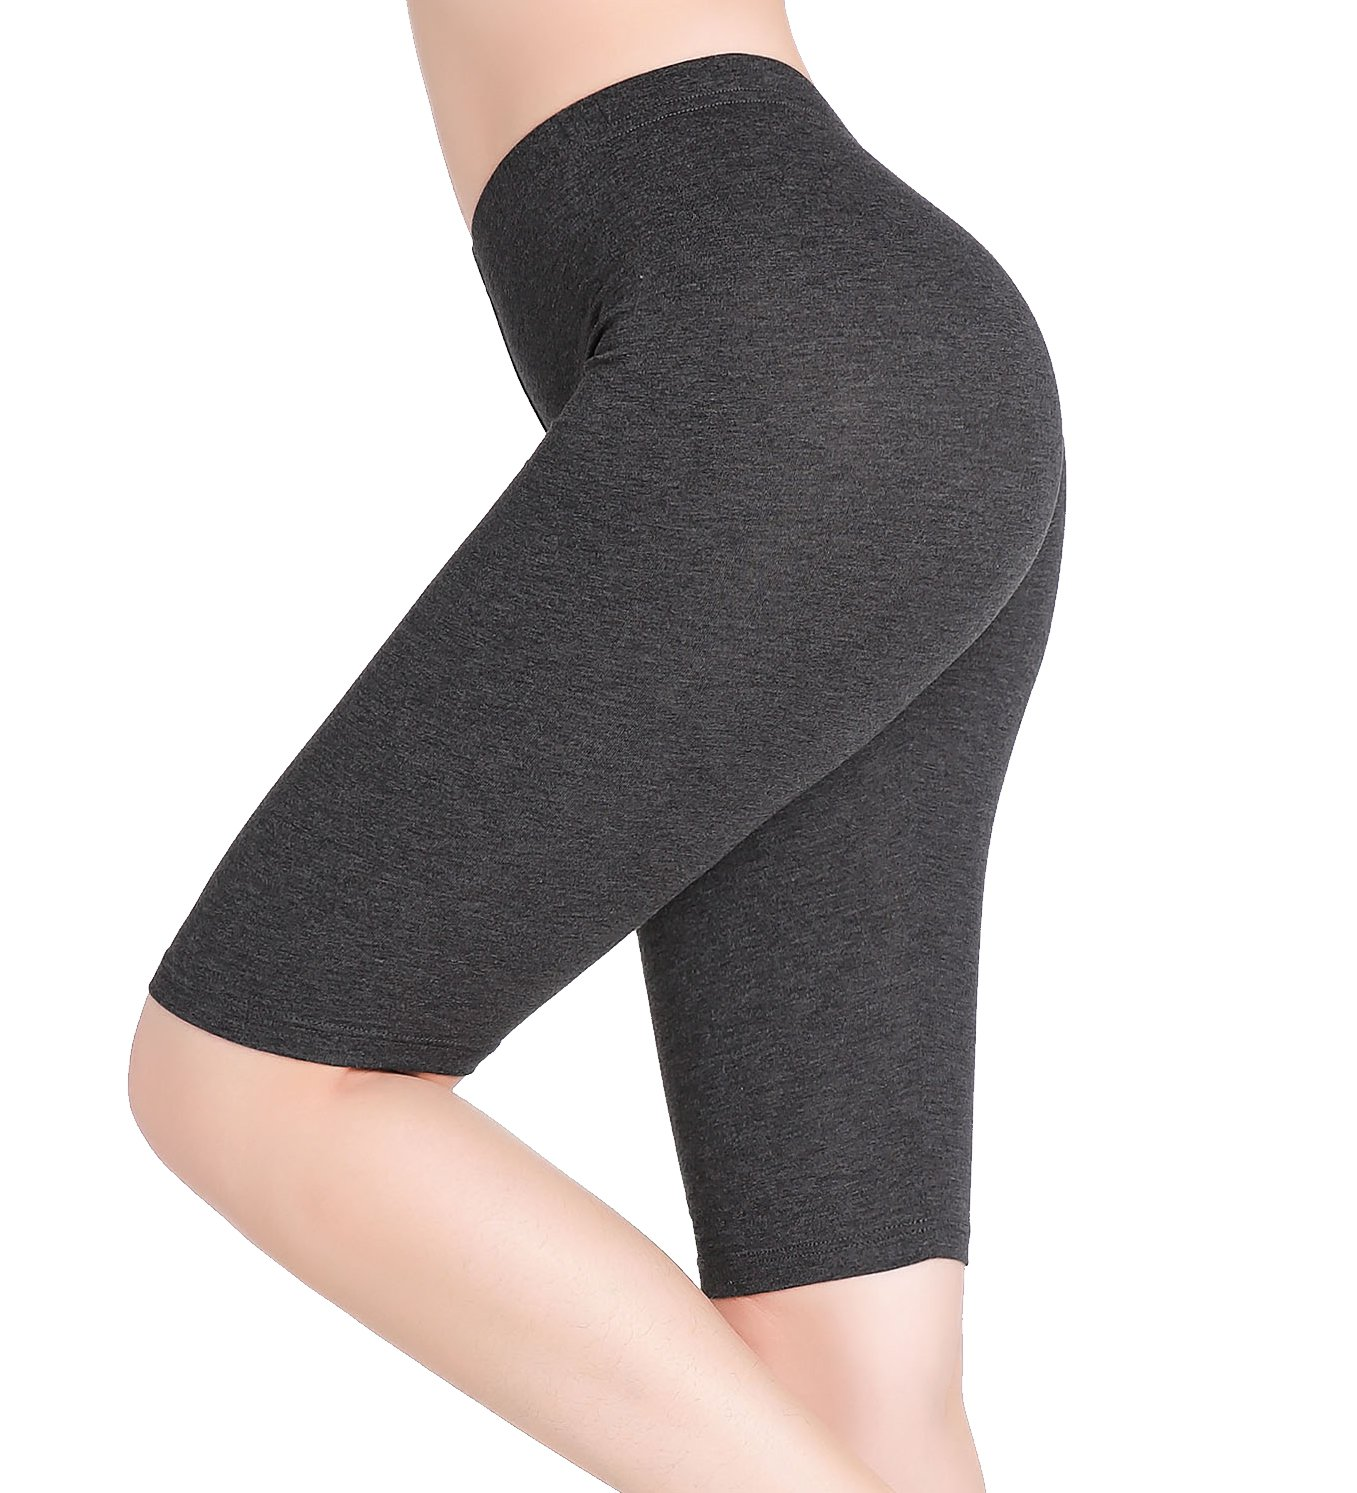 Womens Under Skirt Pants Soft Ultra Stretch Knee Length Leggings Slimming Fitness Sport Shorts,Darkgrey, Large